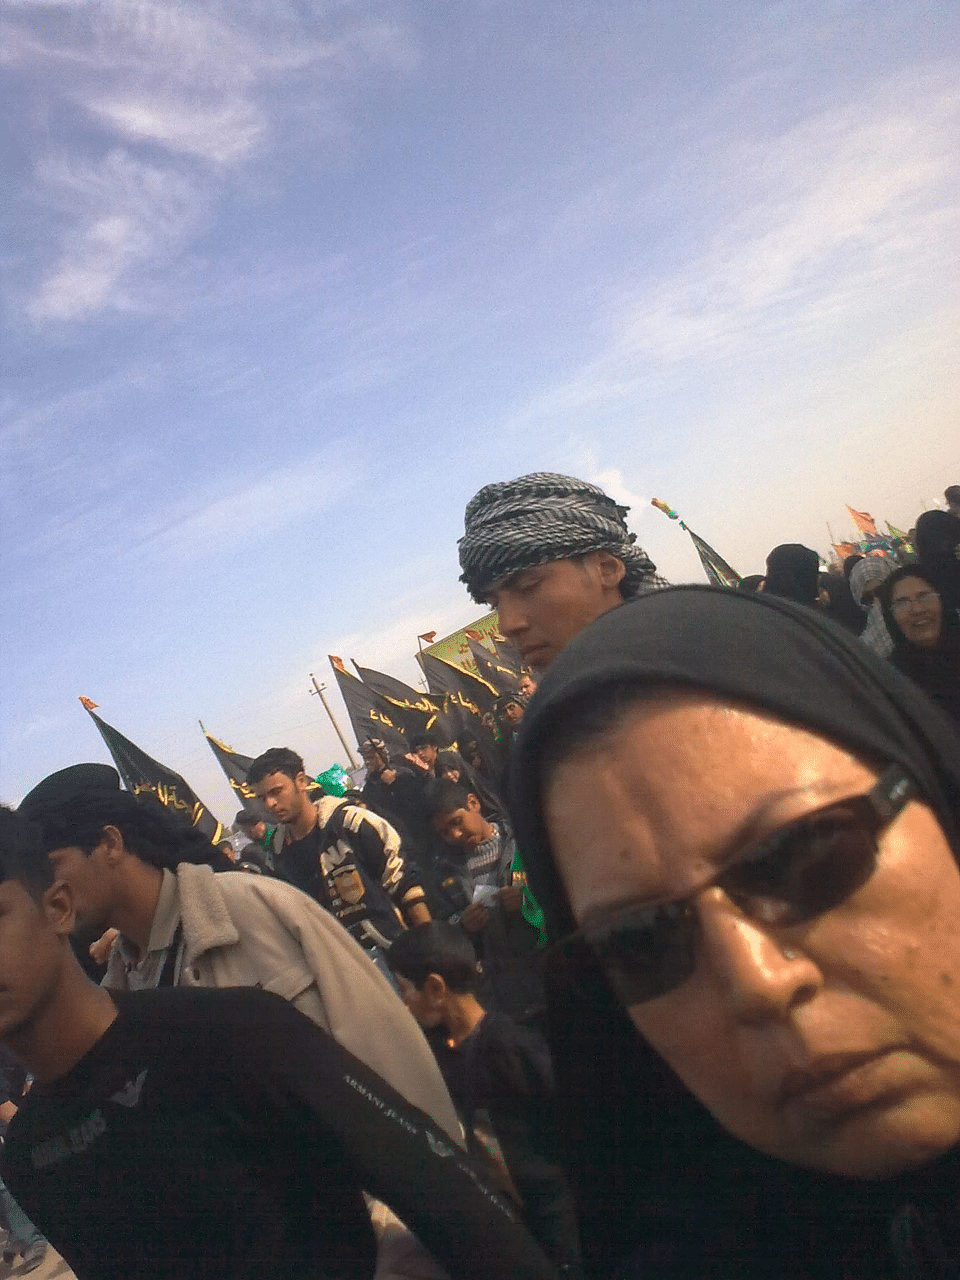 Walking with the ziareens (pilgrims) to Karbala.